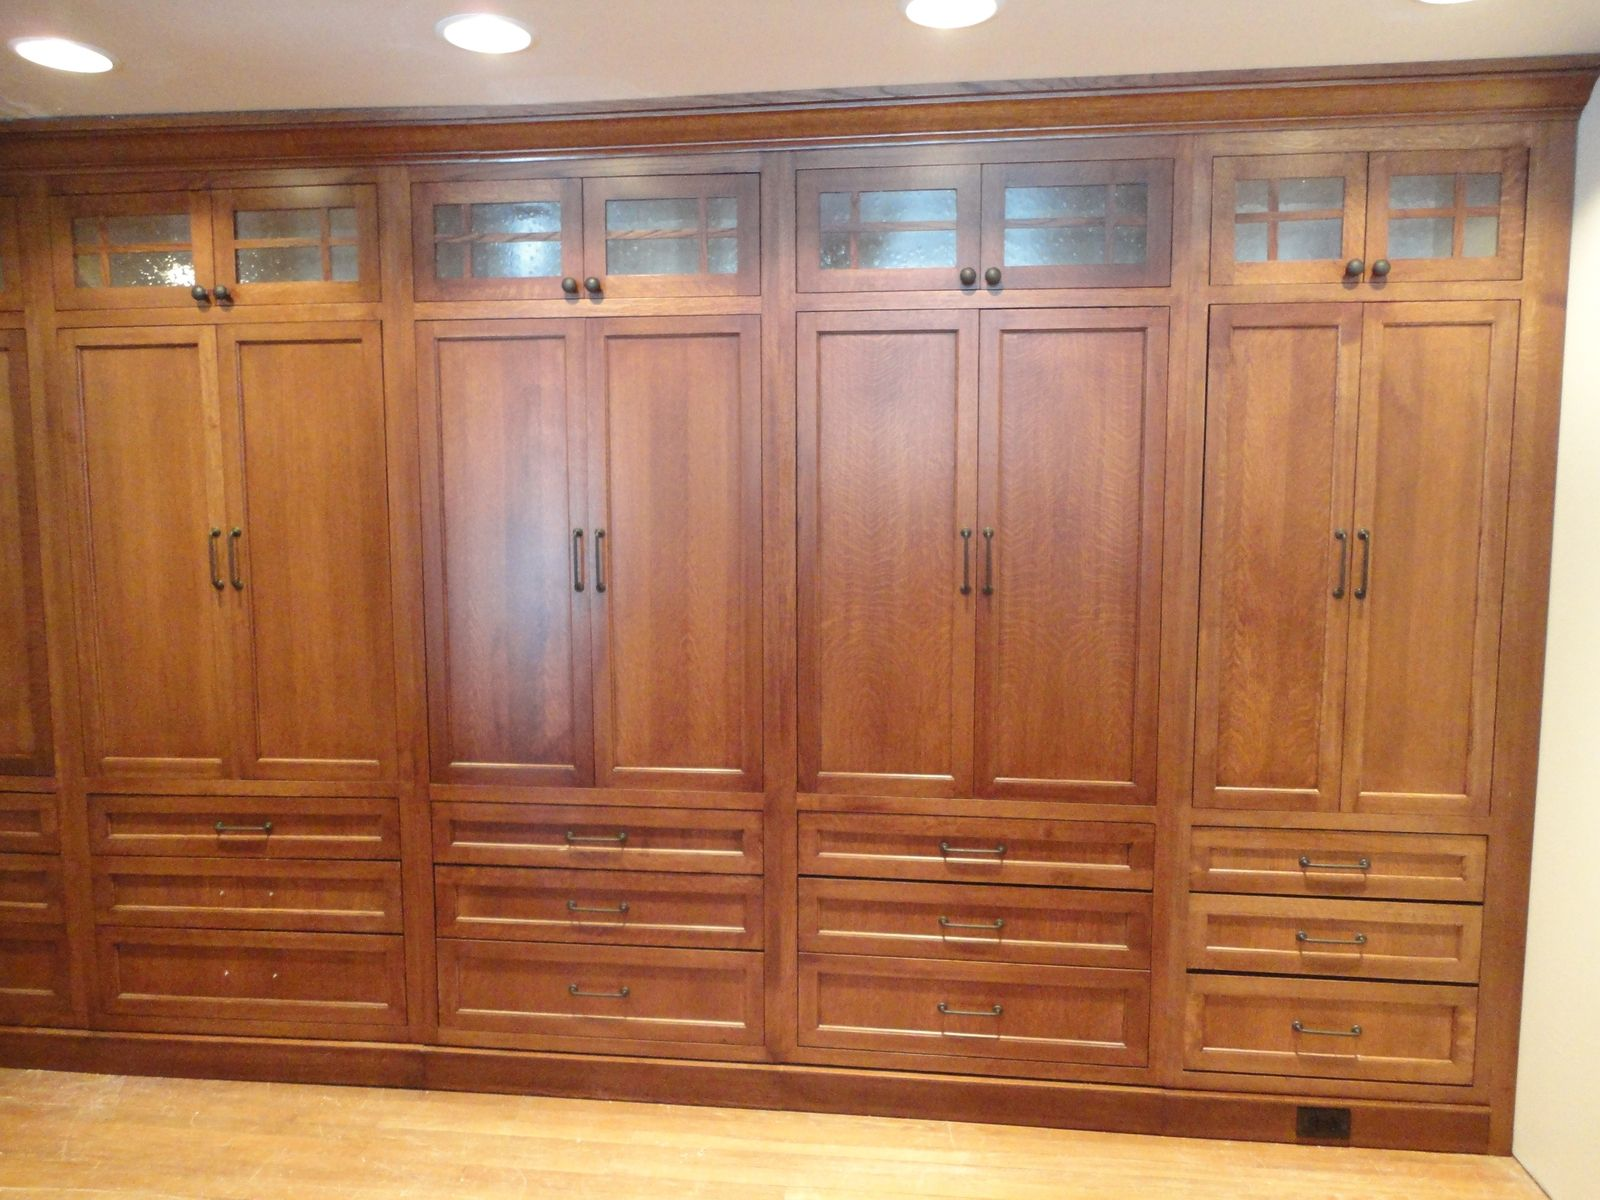 Custom made white oak wardrobe closet by oak mountain custom woodwork Small wall cabinets for bedroom